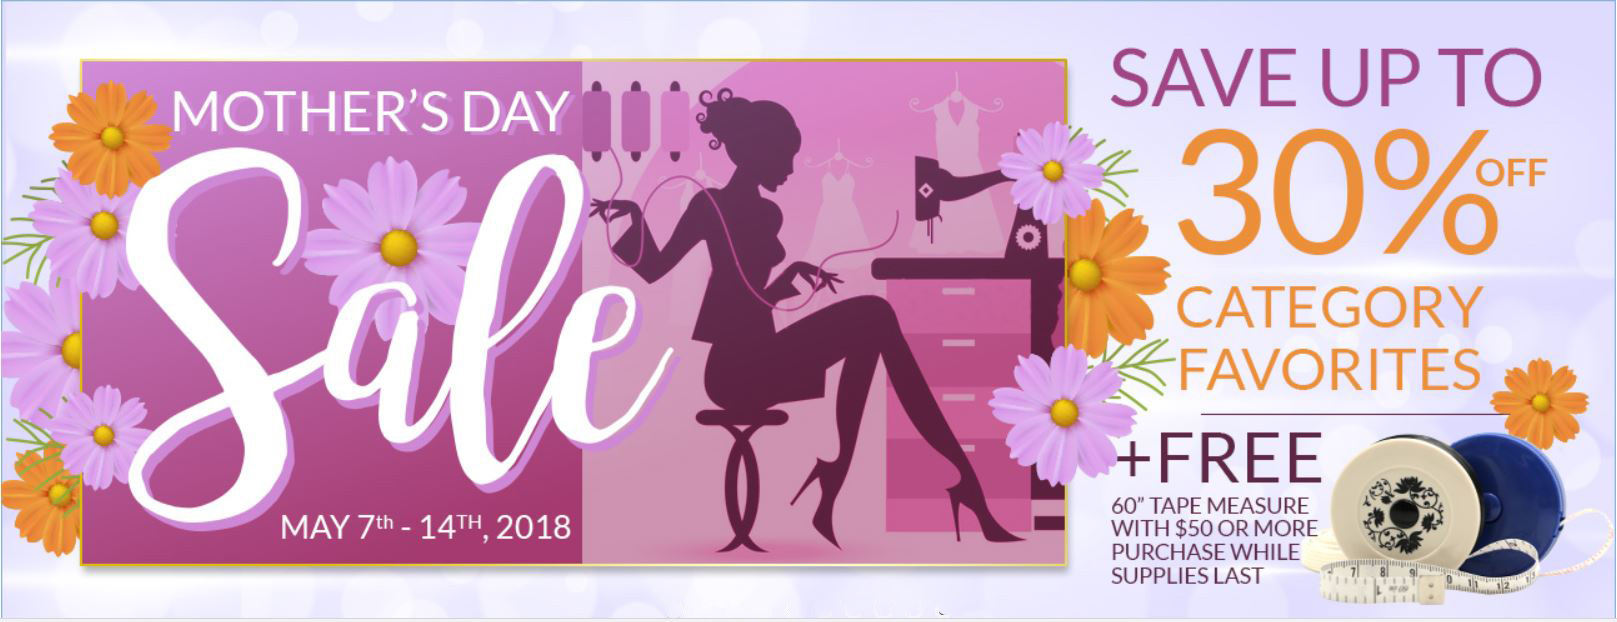 Sewing Machines Plus Mother's Day Sale